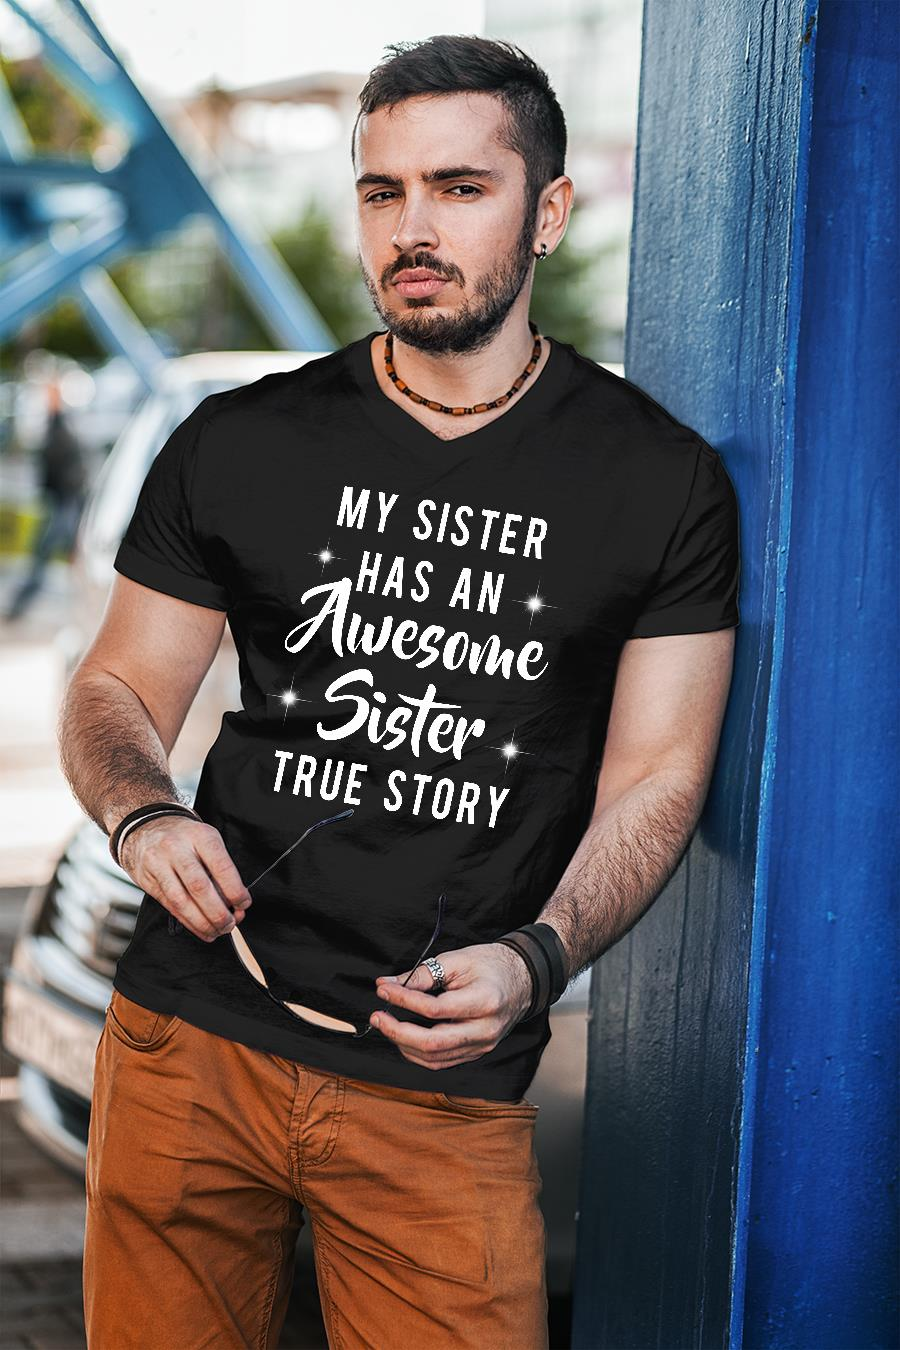 My sister has an awesome sister true story shirt unisex